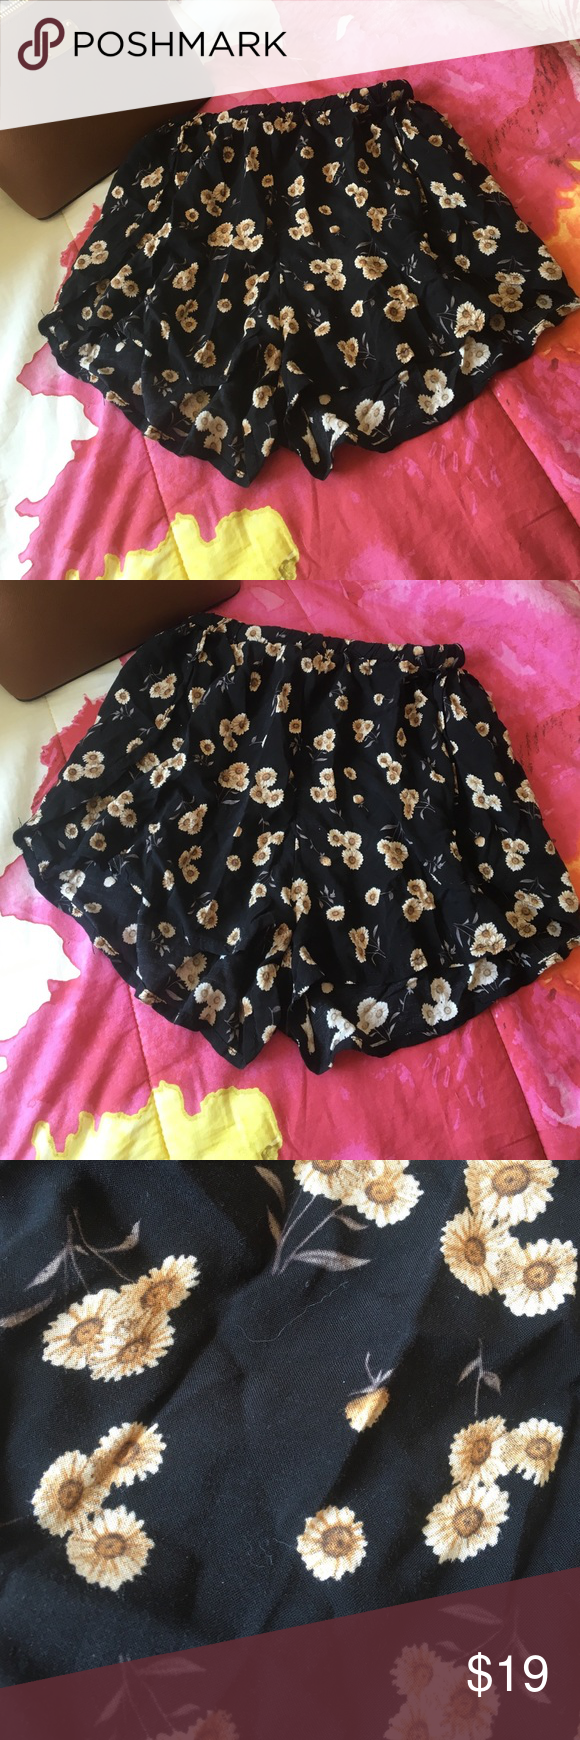 Brandy Melville flowy daisy shorts Super cute shorts from Brandy Melville! Great condition. Will sell on merc for cheaper just ask. Brandy Melville Shorts